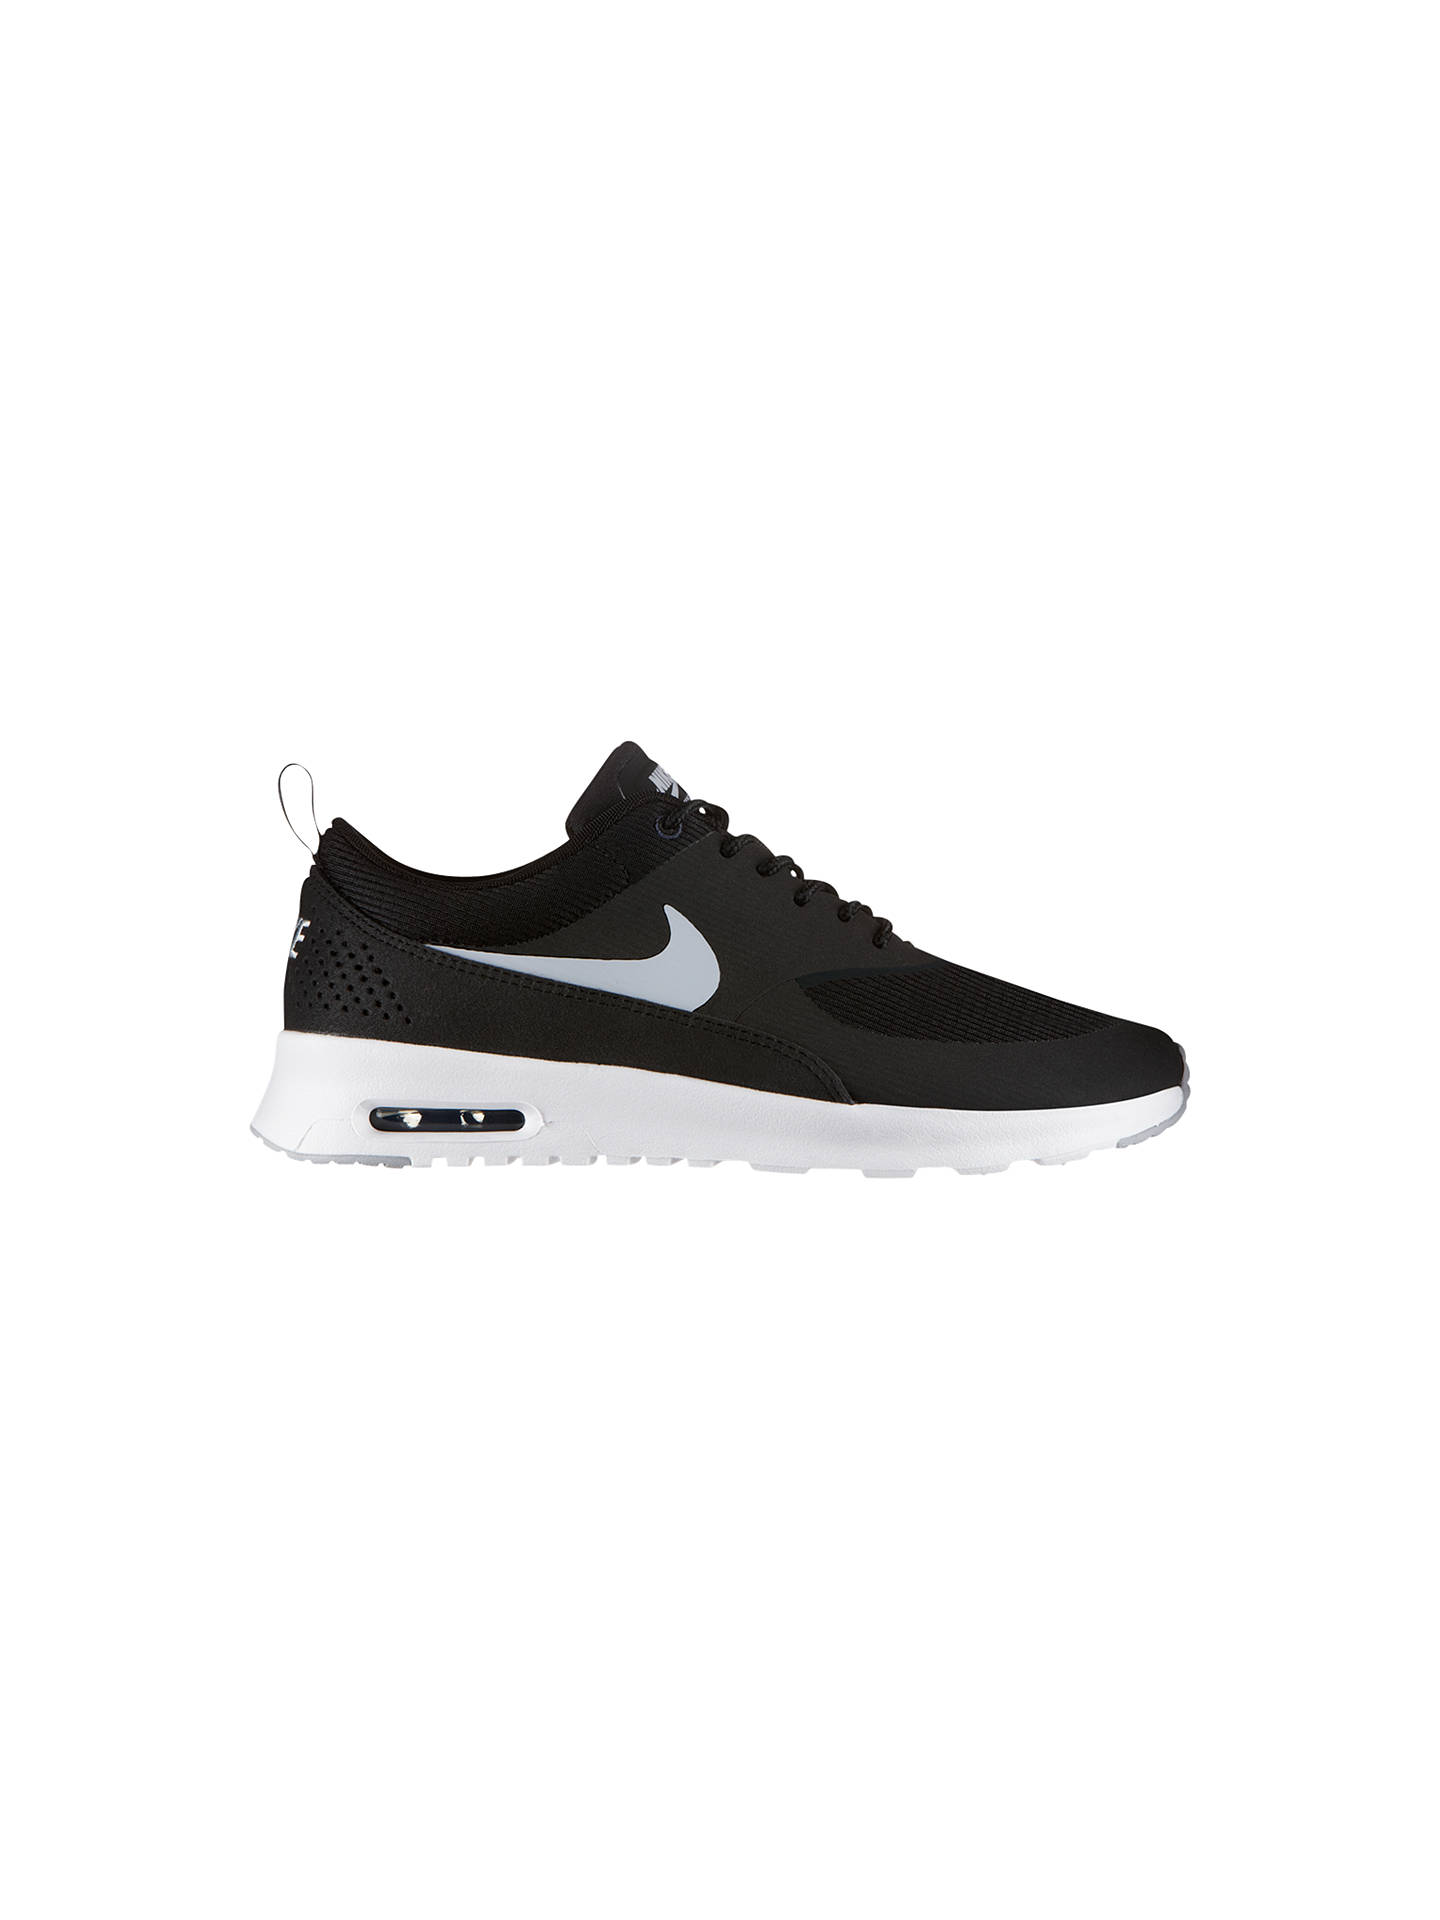 85ac5f4ea7 Buy Nike Air Max Thea Women's Cross Trainers, Black/Grey, Black/Grey ...